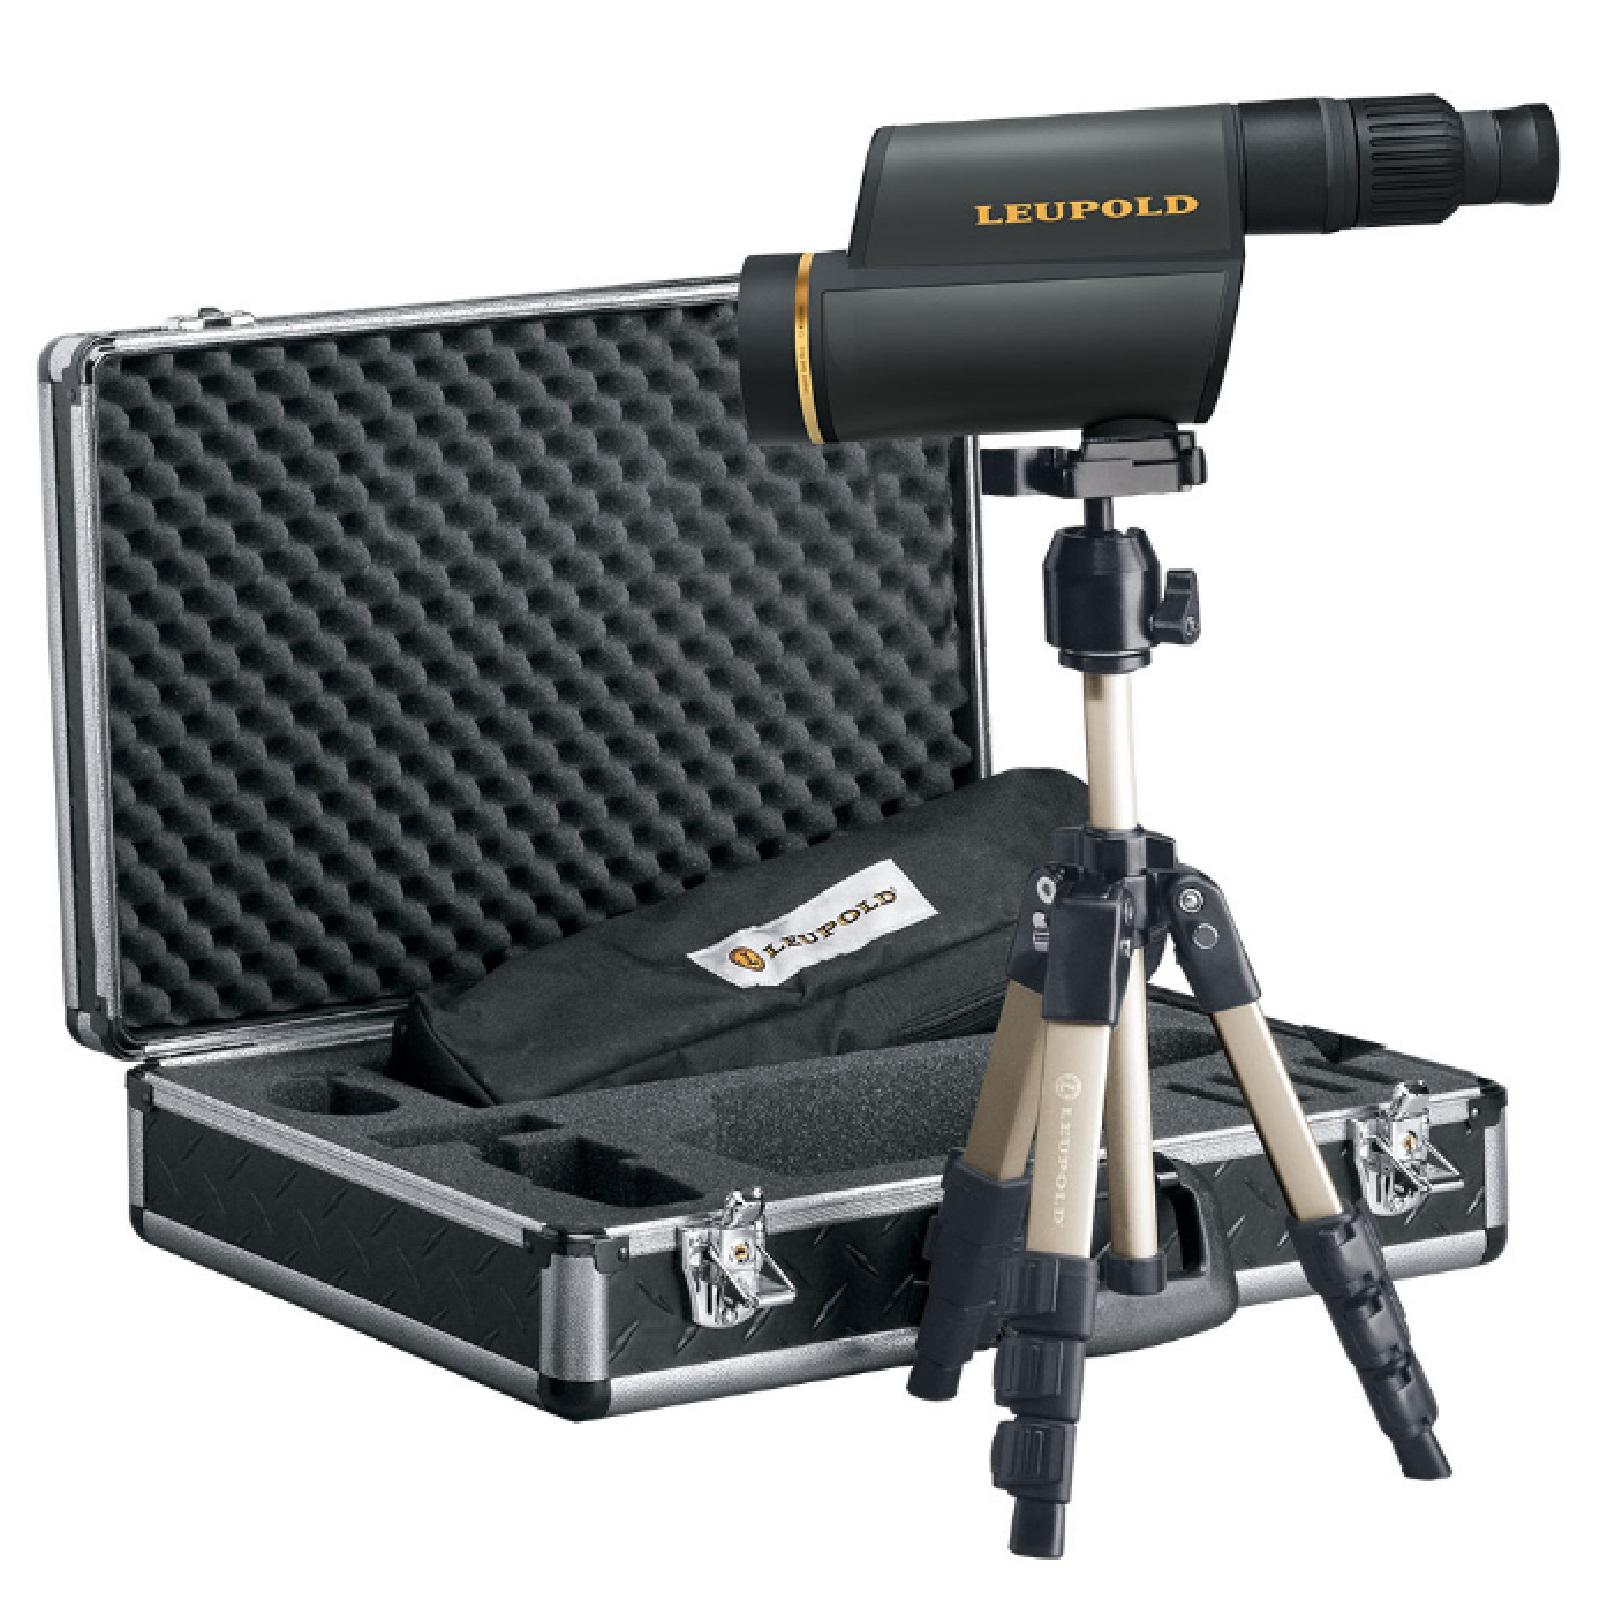 Leupold Gold Ring HD Spotting Scope Kit 12 40x60mm Shadow Gray